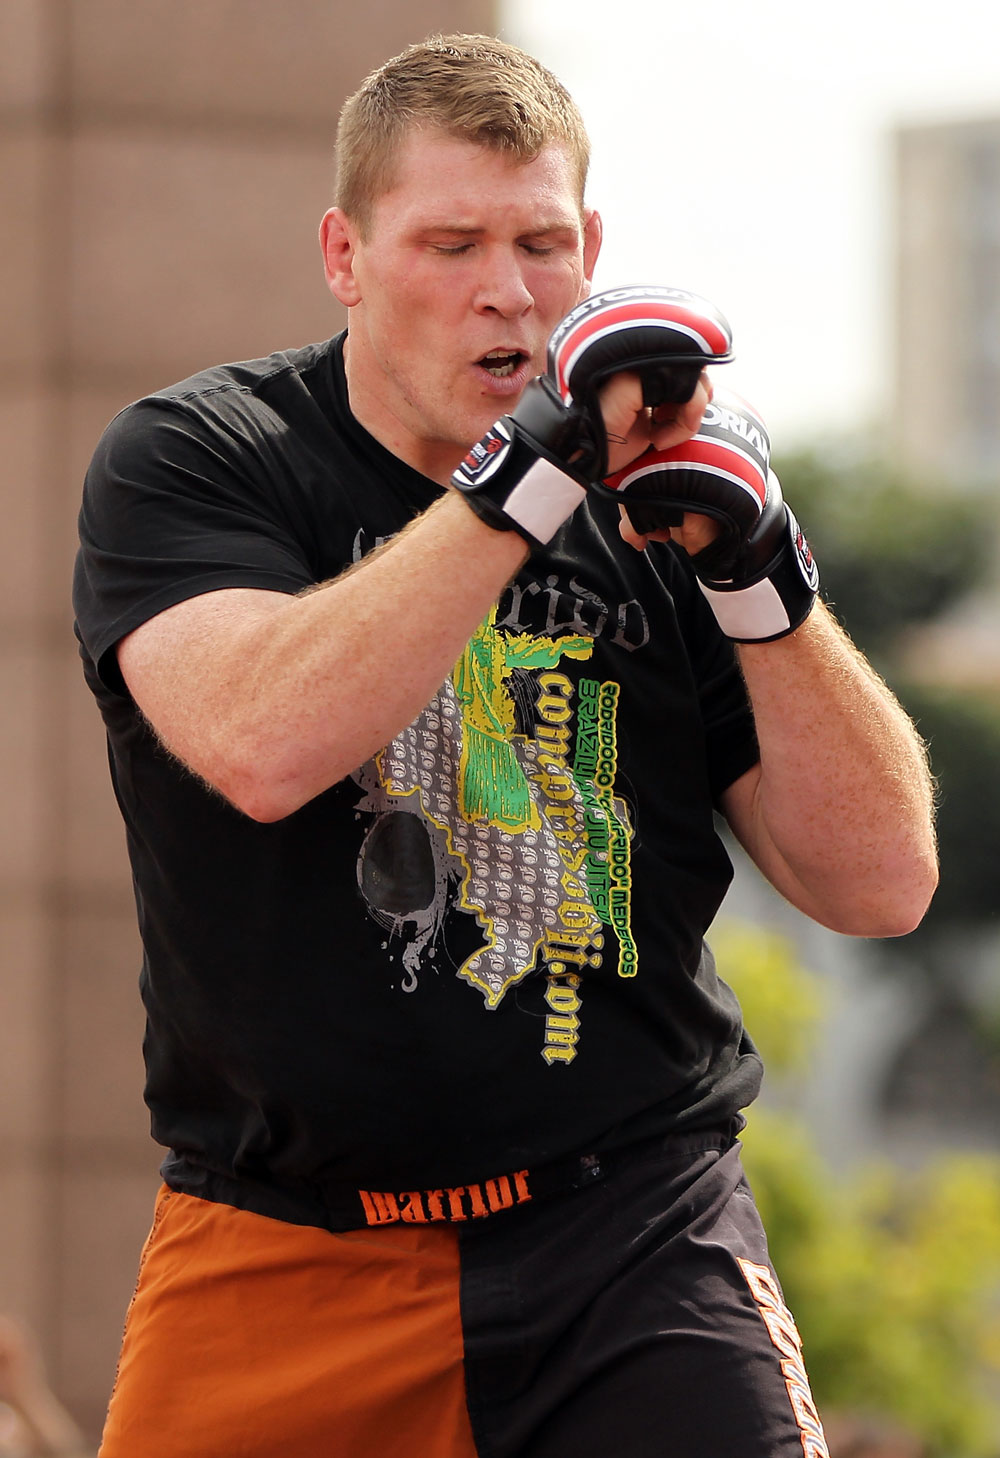 BELO HORIZONTE, BRAZIL - JUNE 20:   Mike Russow works out for the fans and media during the UFC 147 open workouts at Praca da Estacao on June 20, 2012 in Belo Horizonte, Brazil.  (Photo by Josh Hedges/Zuffa LLC/Zuffa LLC via Getty Images)